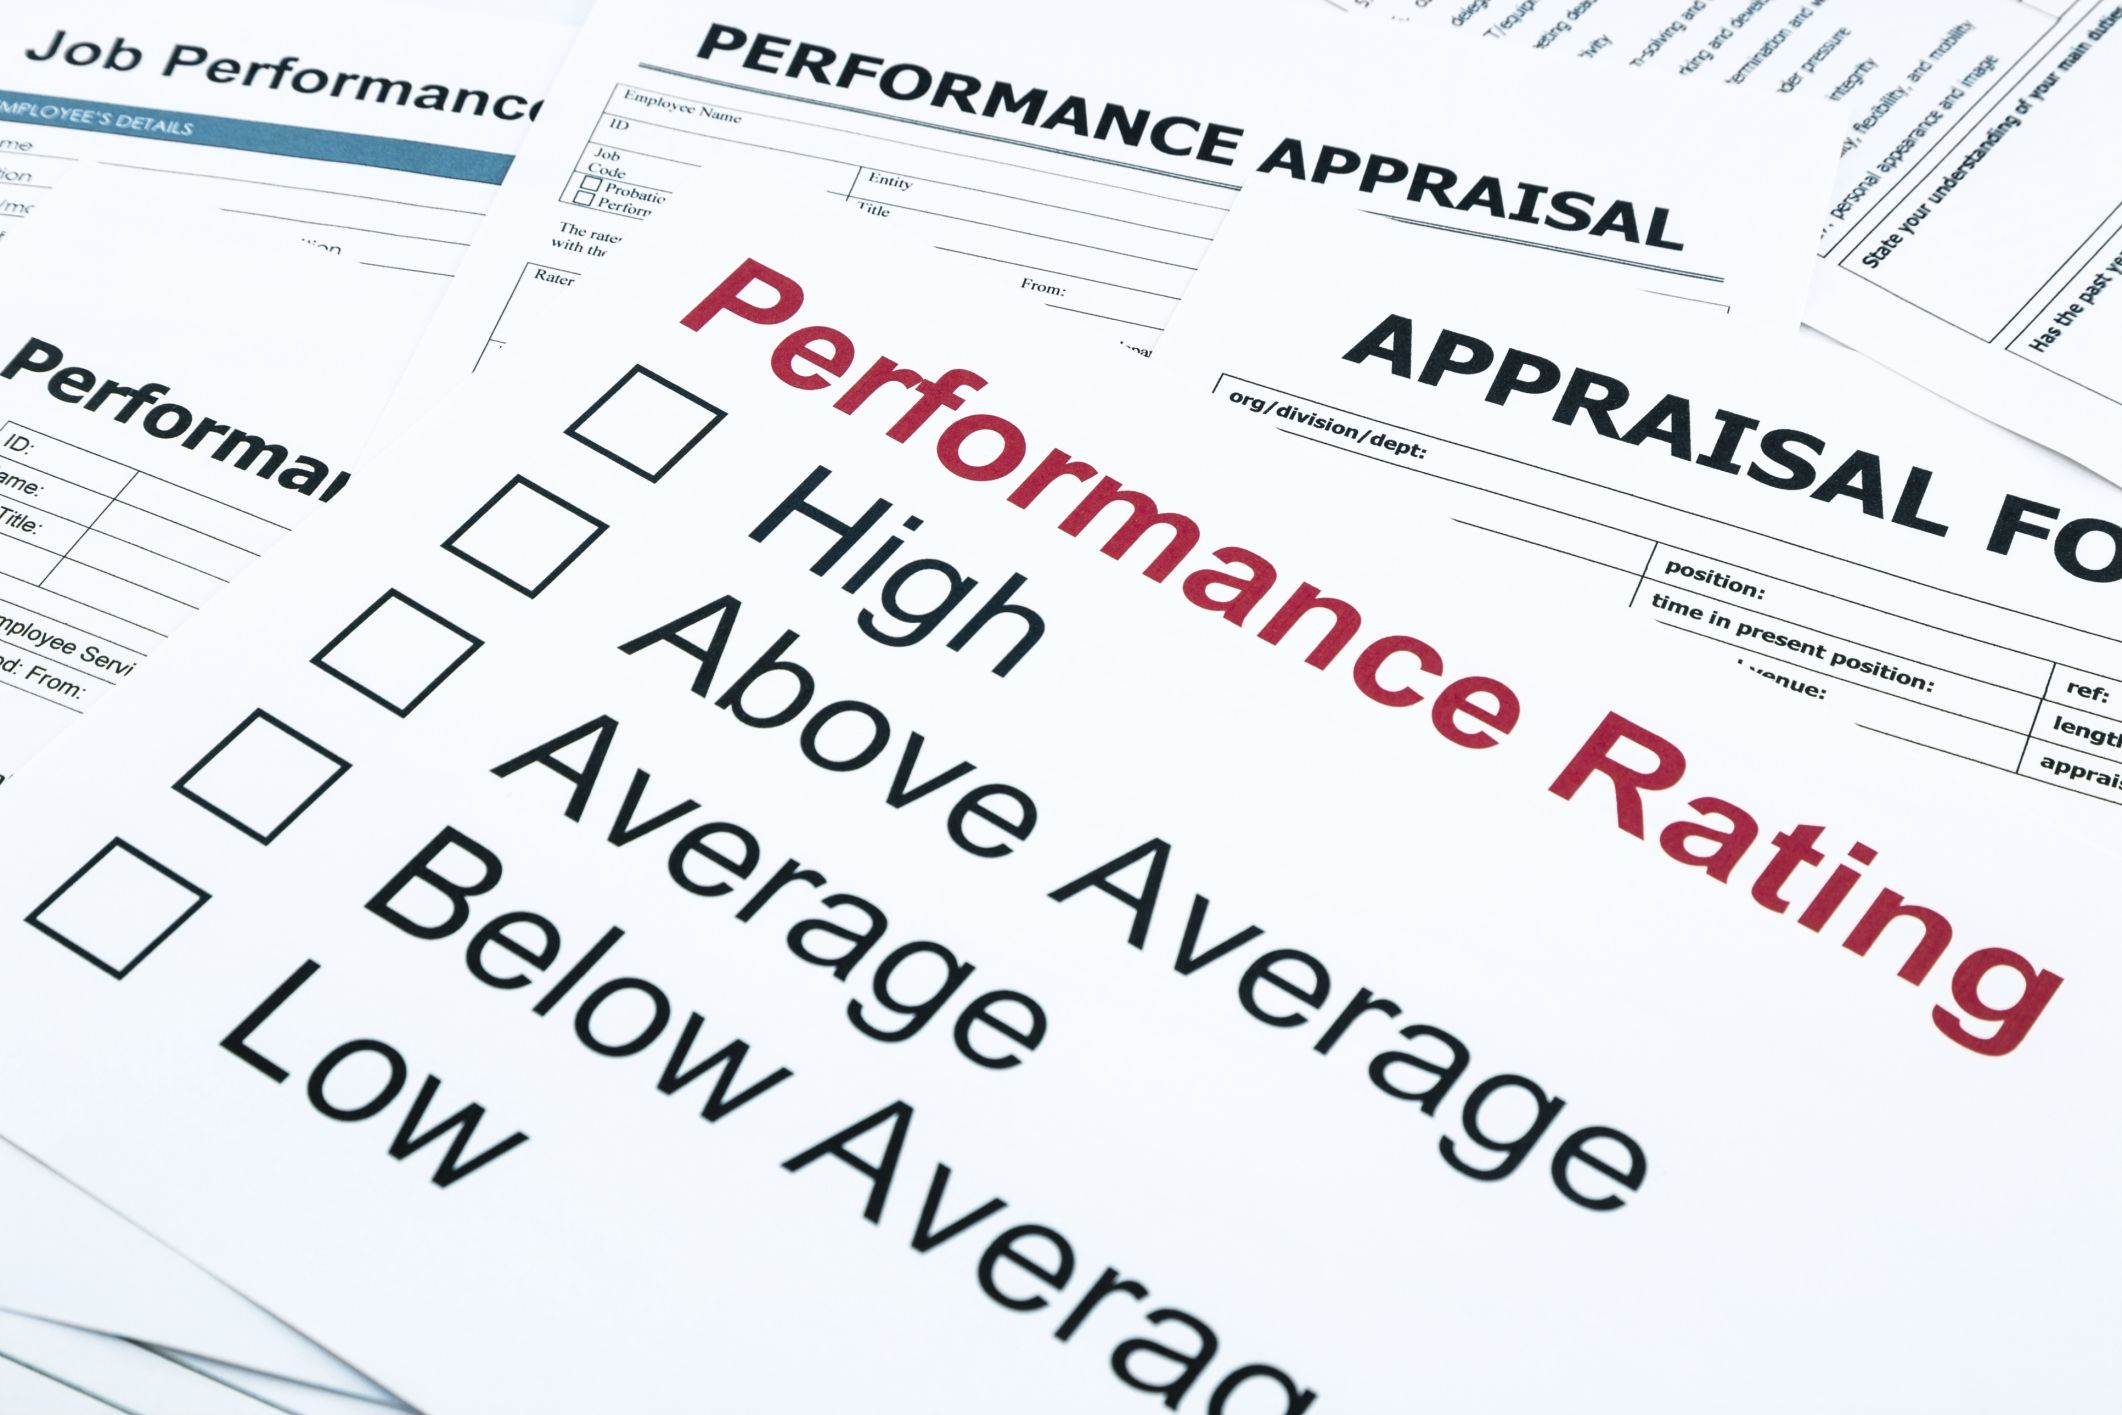 Sample Phrases for Performance Reviews | Performance ...